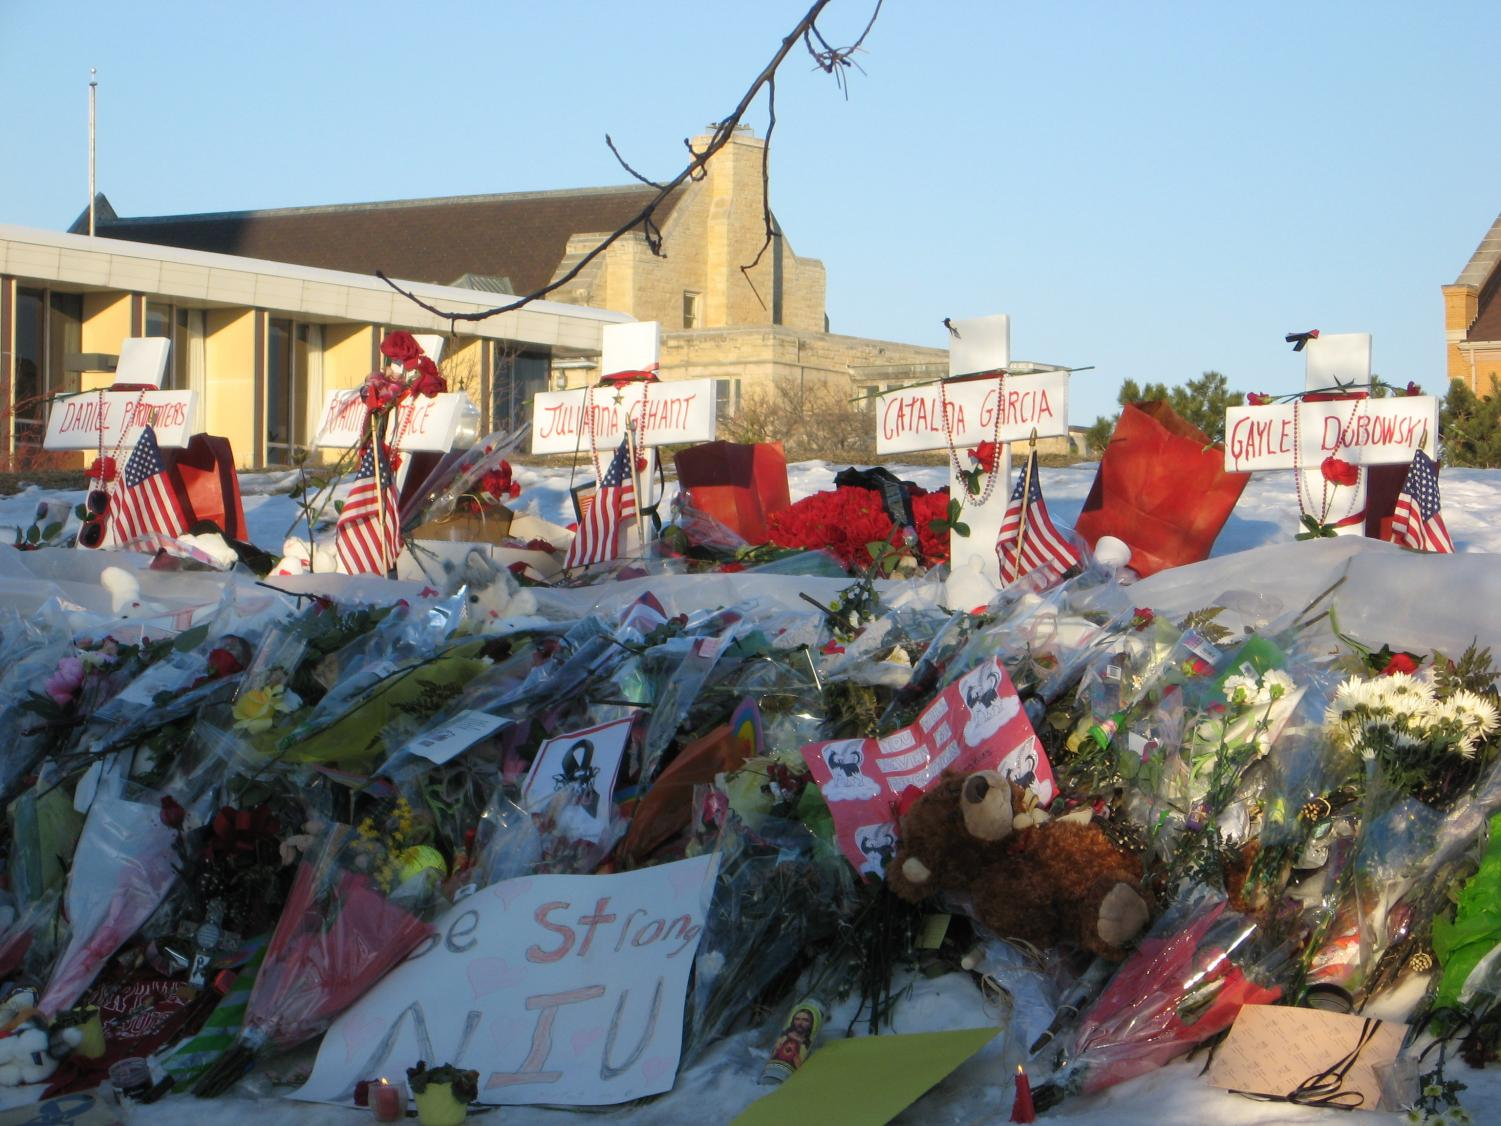 After Northern Illinois' 2008 shooting, killing six and injuring 21 people, the school solicited help from licensed counselors to help students cope with symptoms resulting from the senseless trauma. What services should be available to students, friends and family after such tragedies? And in the long-run, what required attention is still needed to make sure the tragedy doesn't claim any more lives?